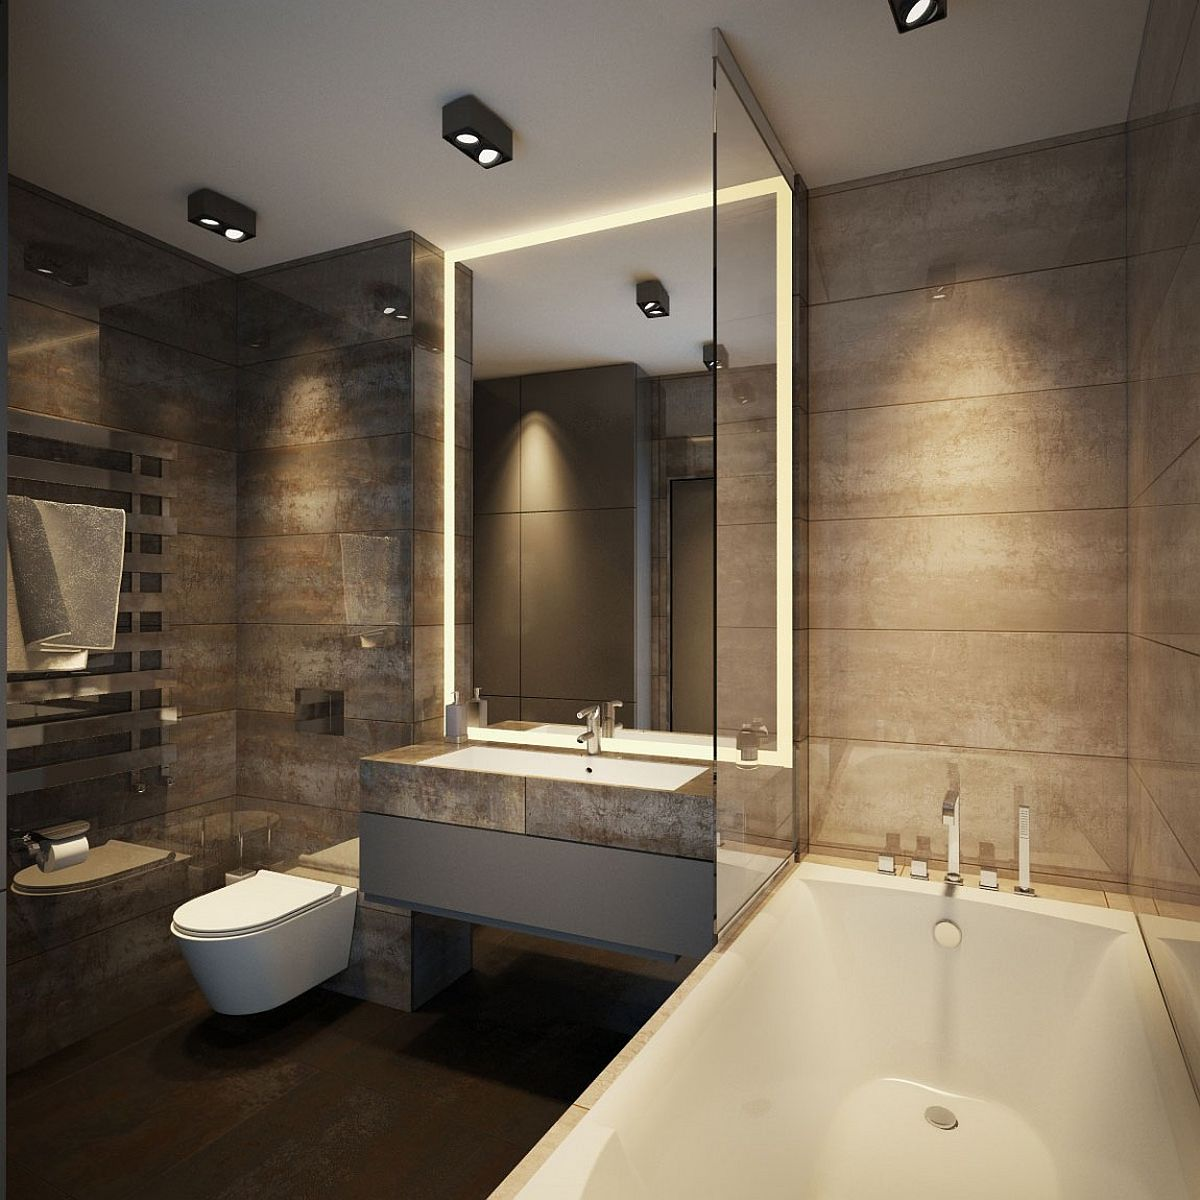 Apartment ernst in kiev inspired by posh hotel ambiance for Apartment bathroom decor